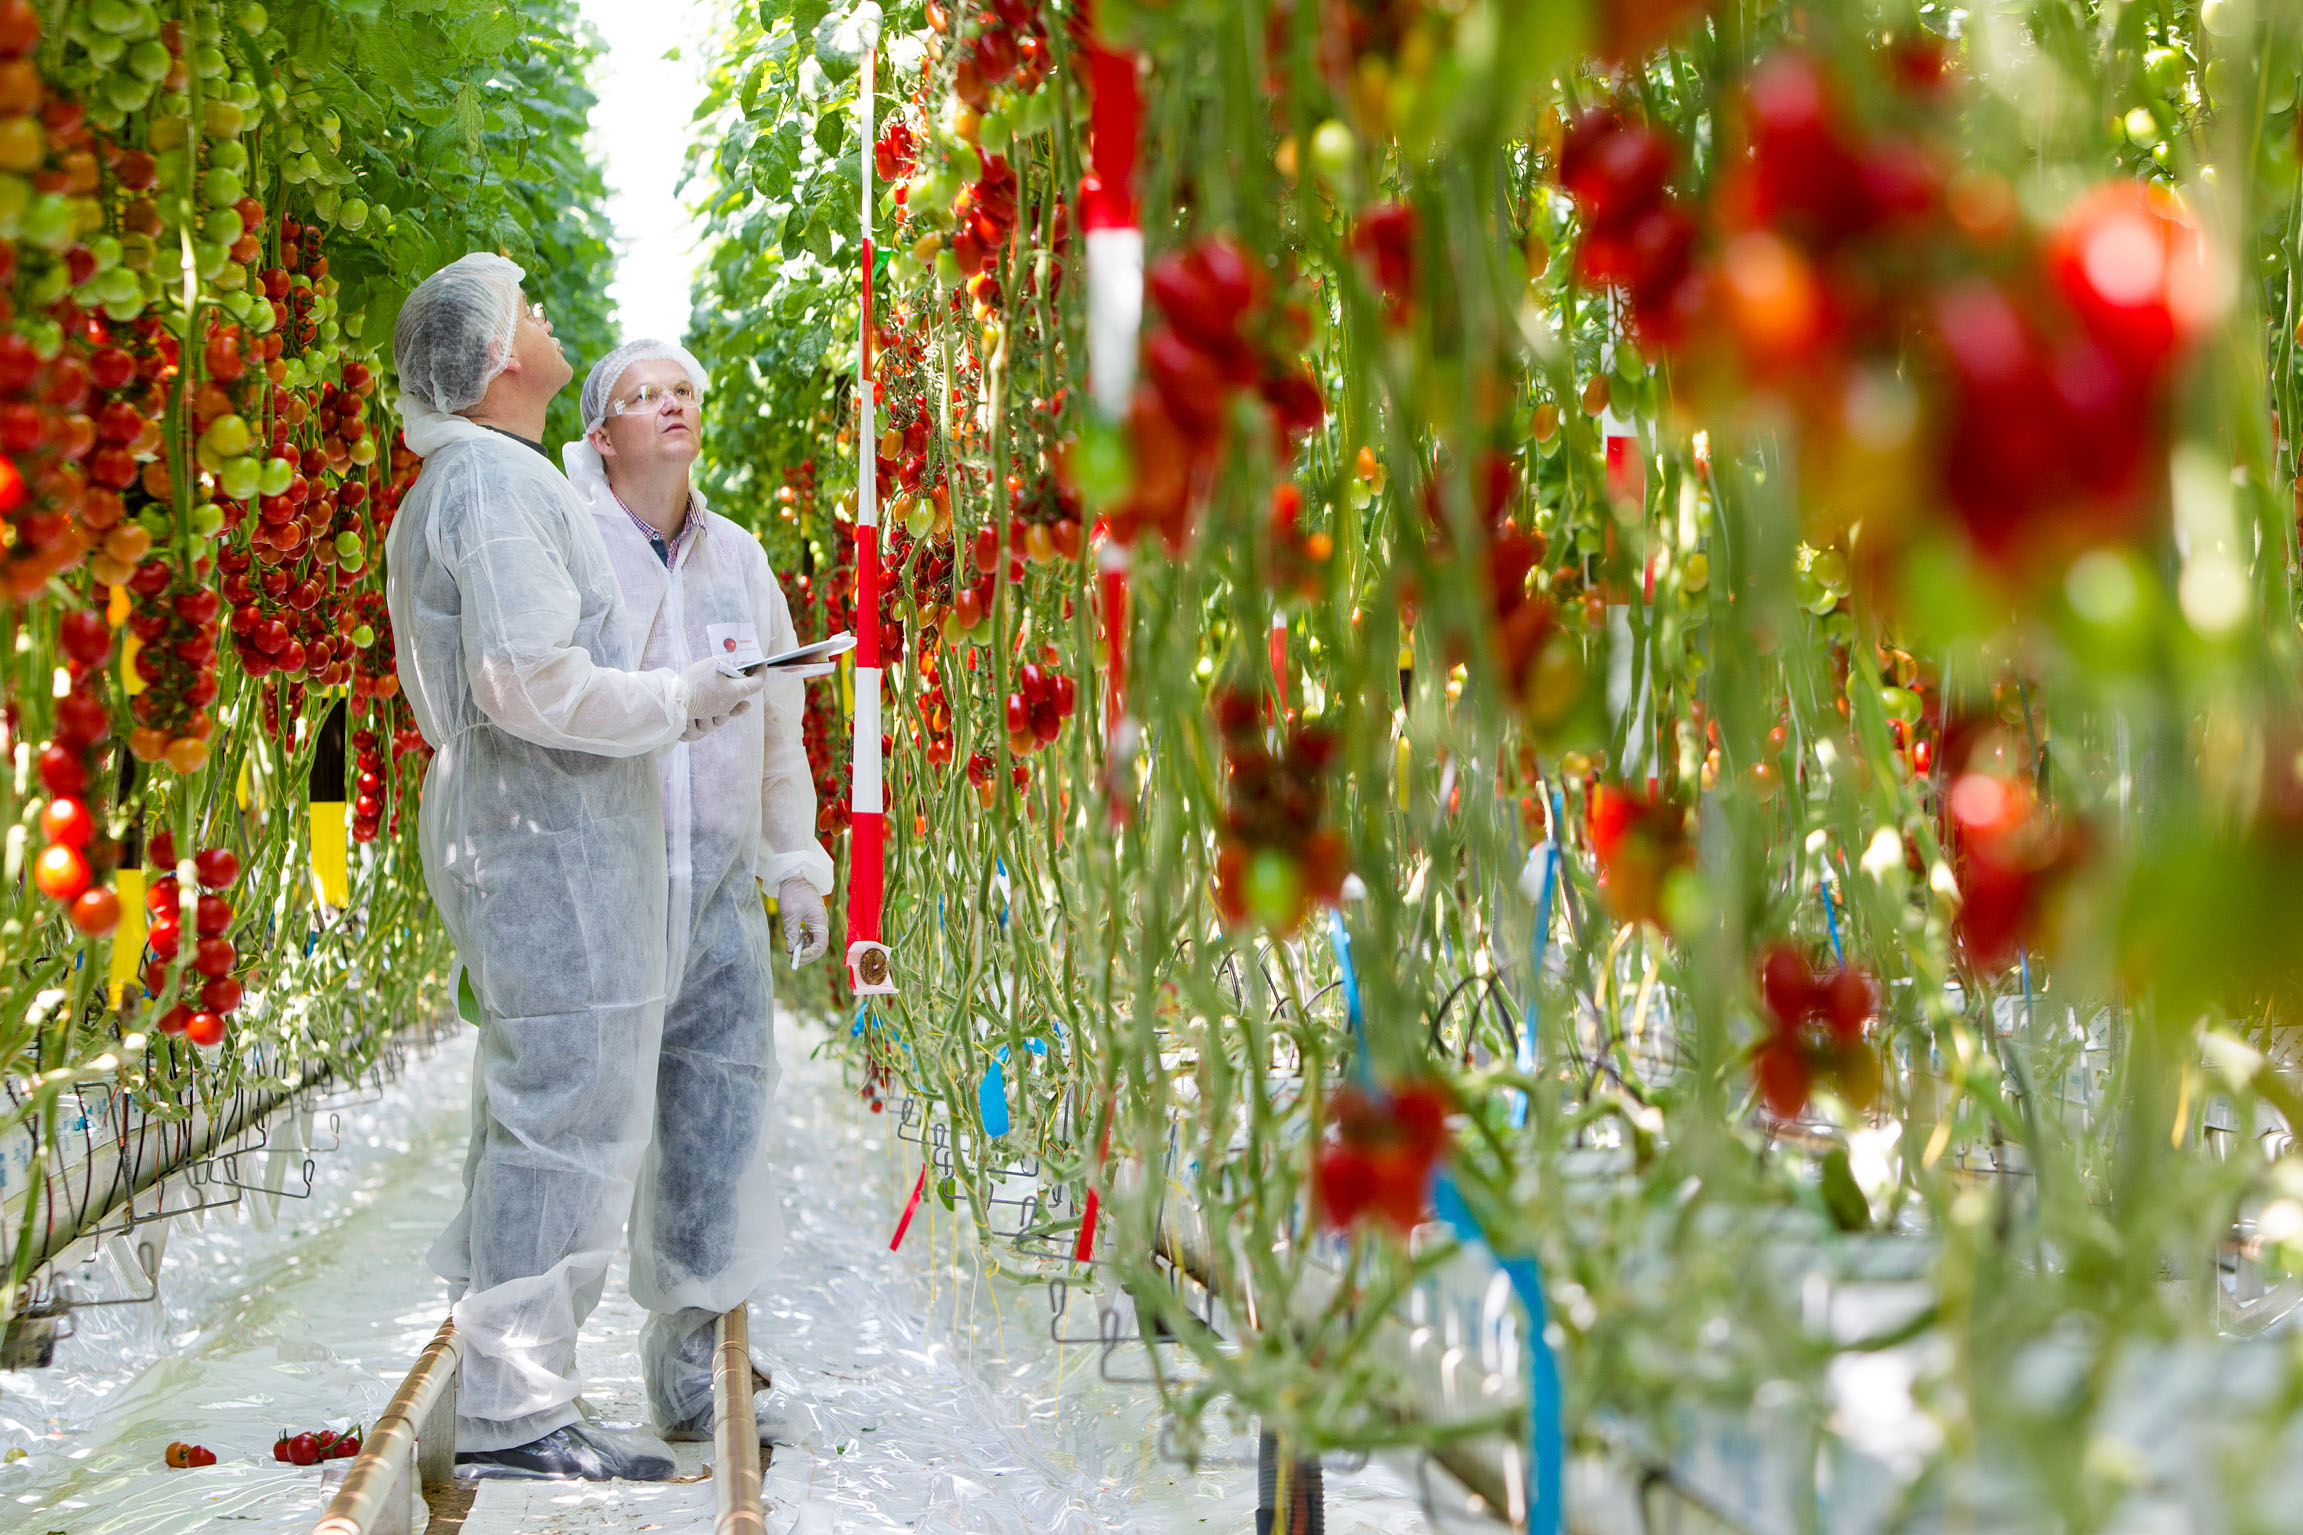 During the open day on June 3 in its Tomato Experience Centre in 's-Gravenzande, De Ruiter Seeds showed its visitors as many as 350 different tomato varieties, mostly De Ruiter Seeds varieties.